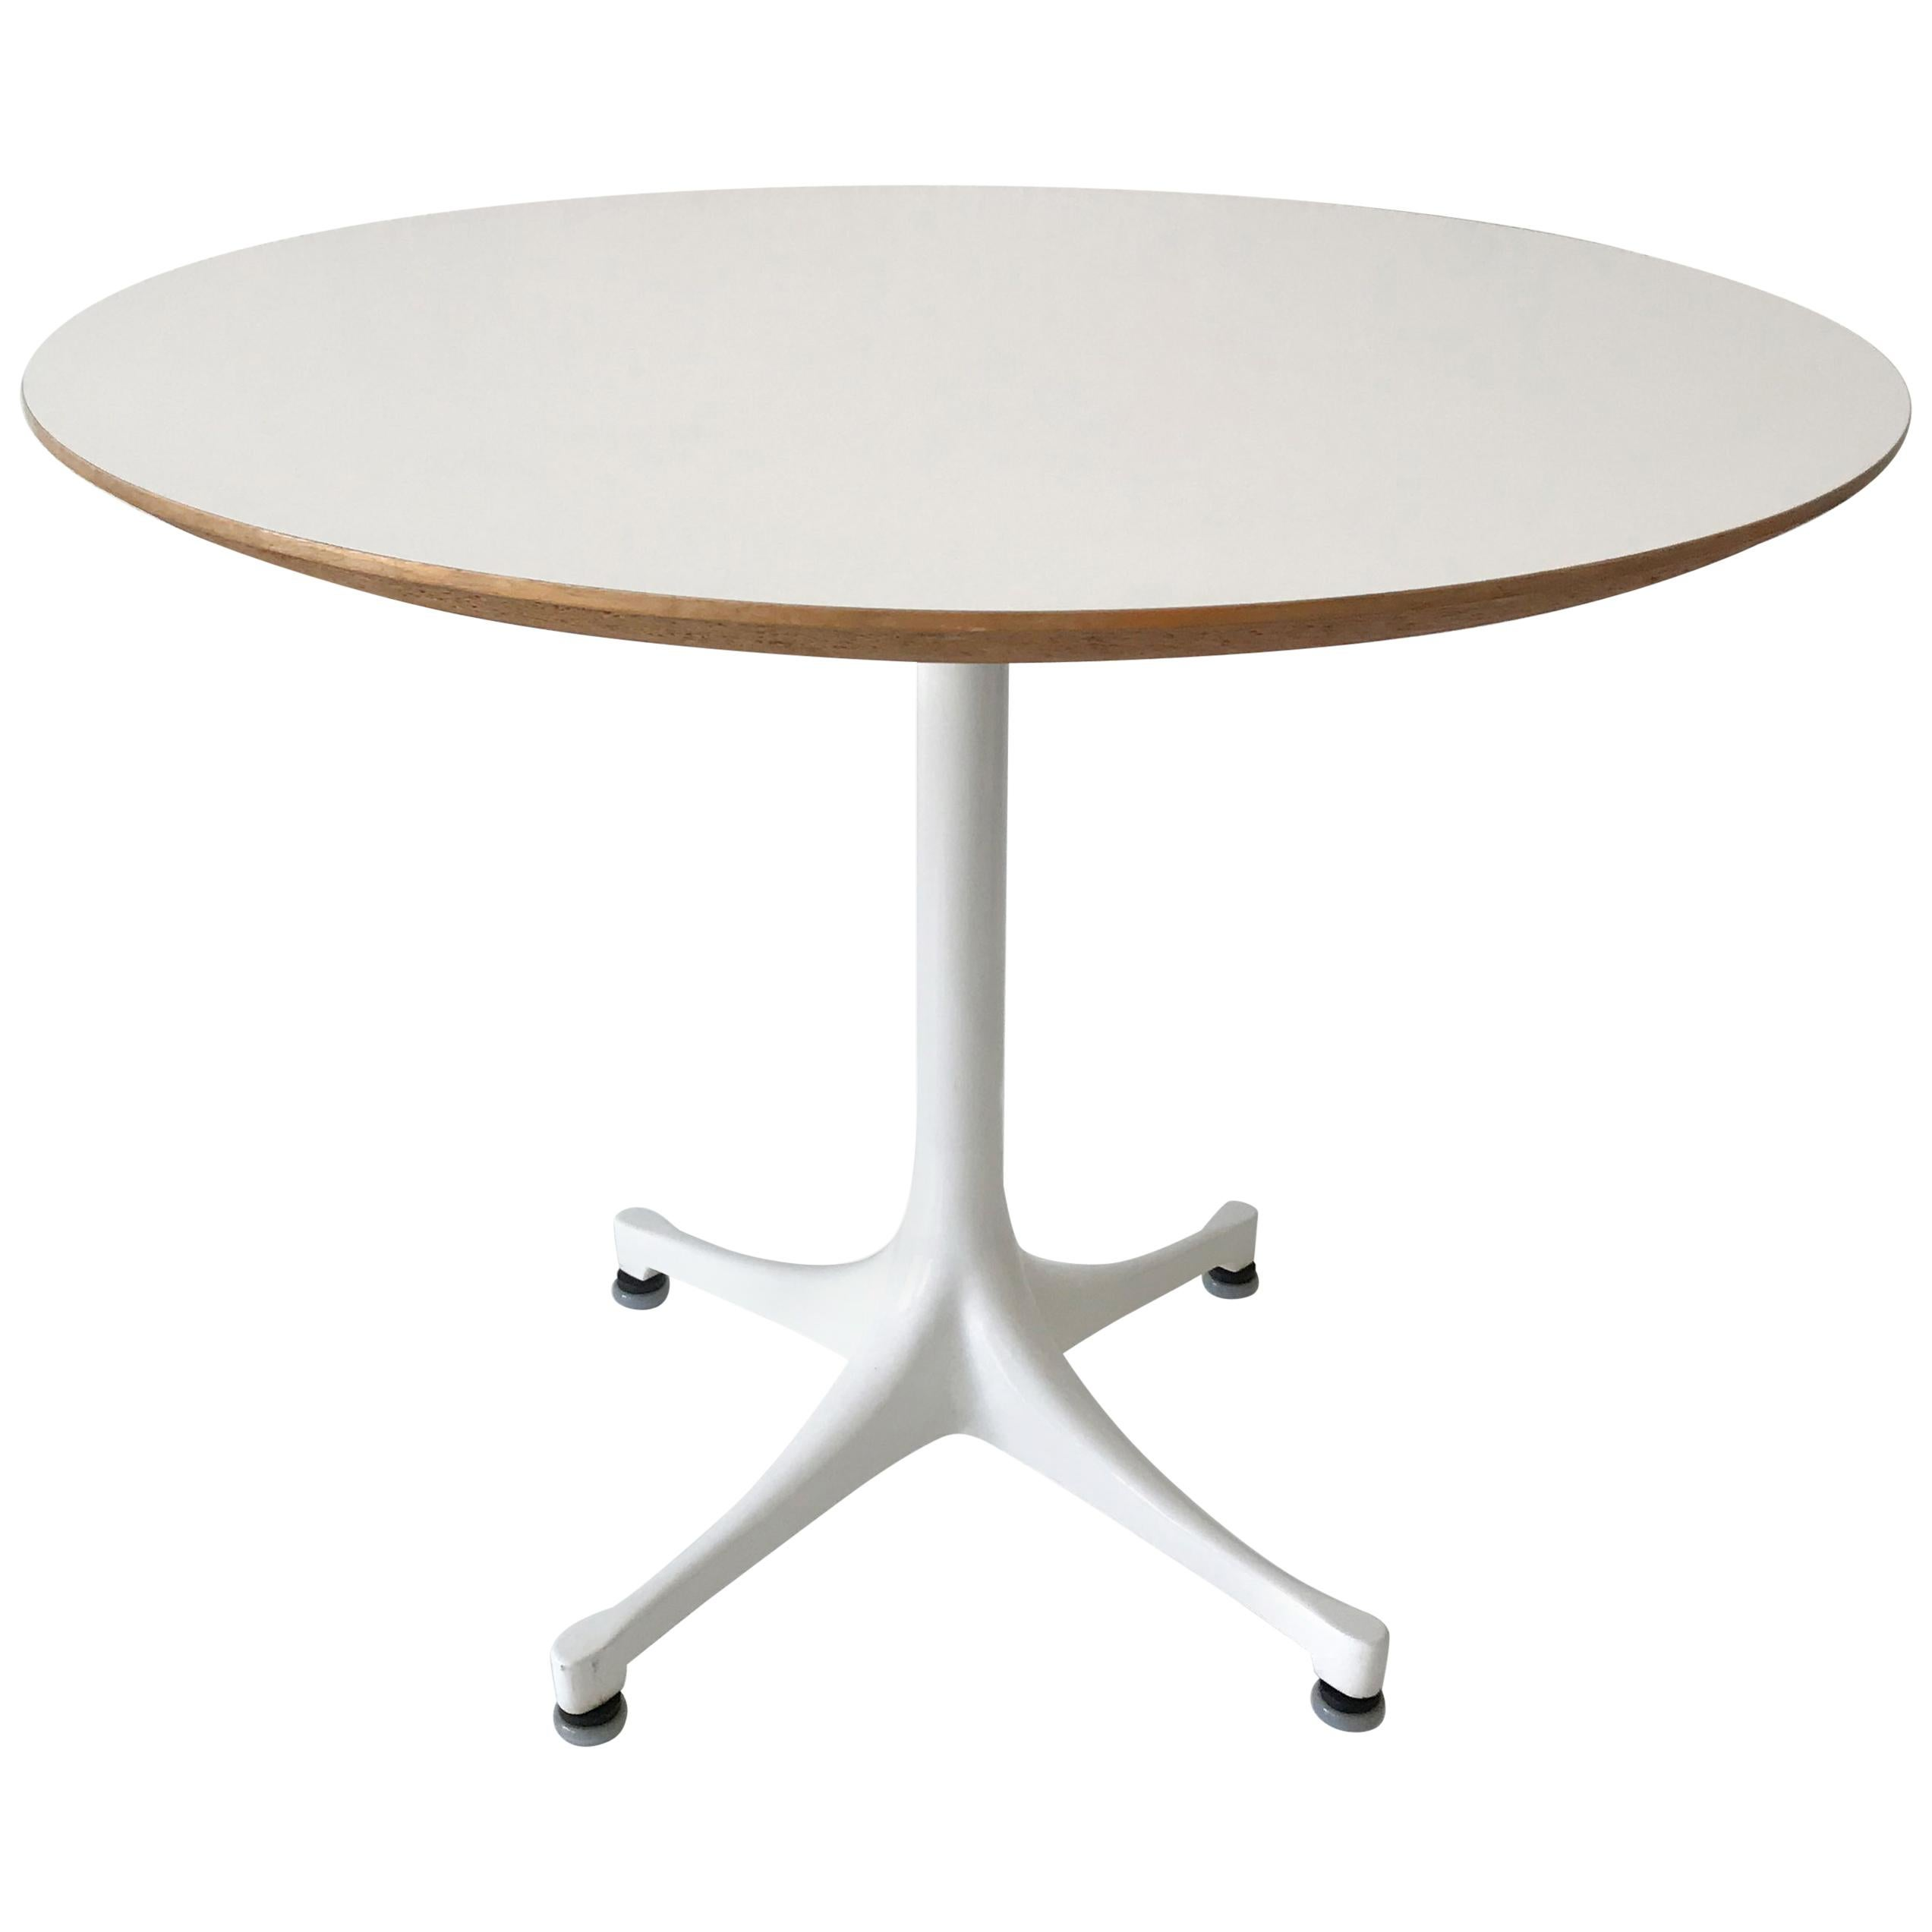 Pedestal Coffee Table 5452 By George Nelson For Herman Miller, 1960s, USA